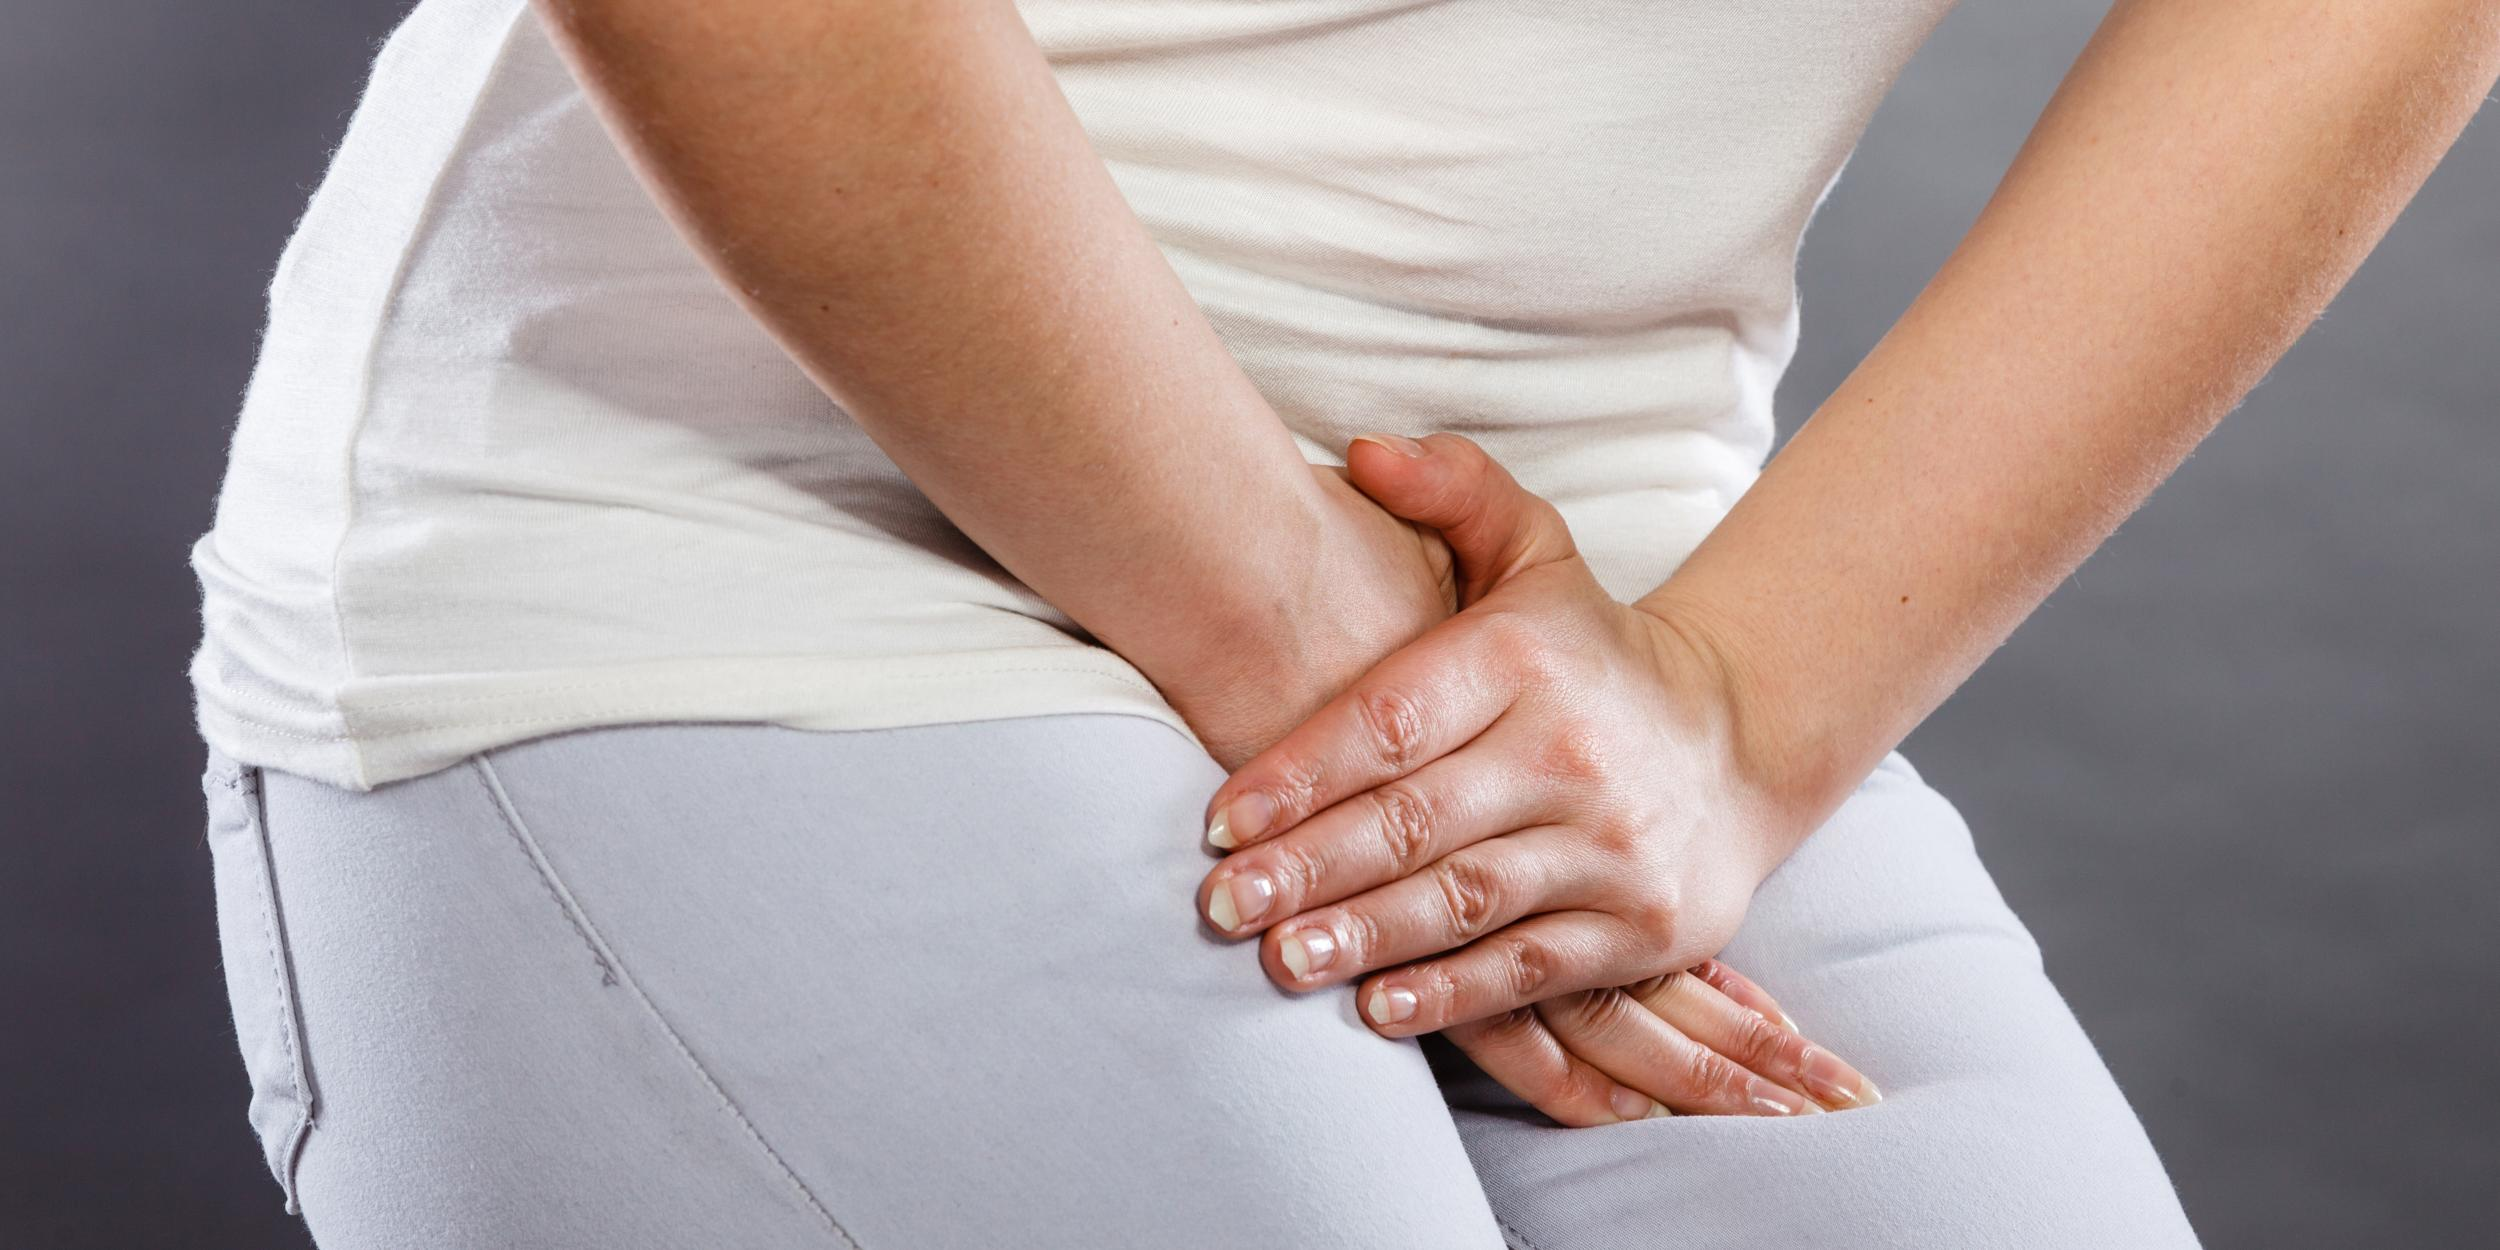 You can stretch your bladder to easily hold more pee Anetlanda/Getty iStock